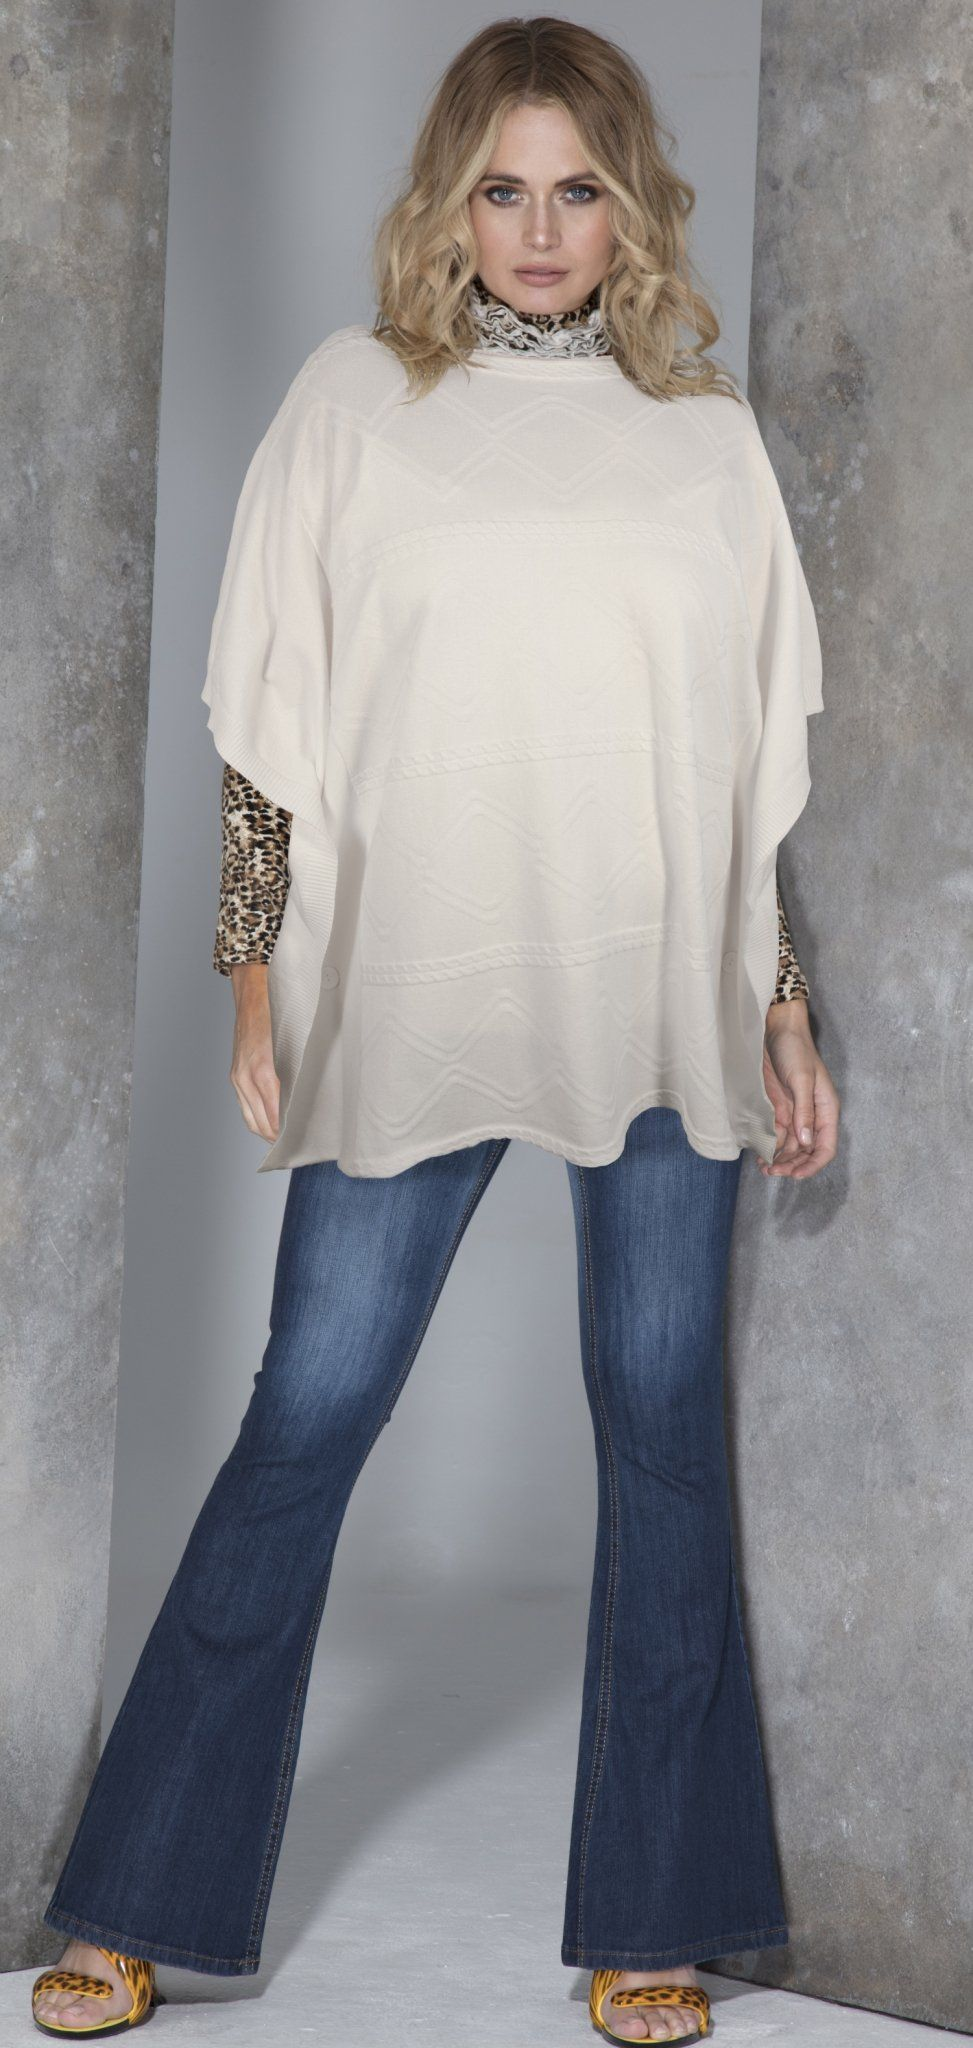 Poncho - Winter White One Size